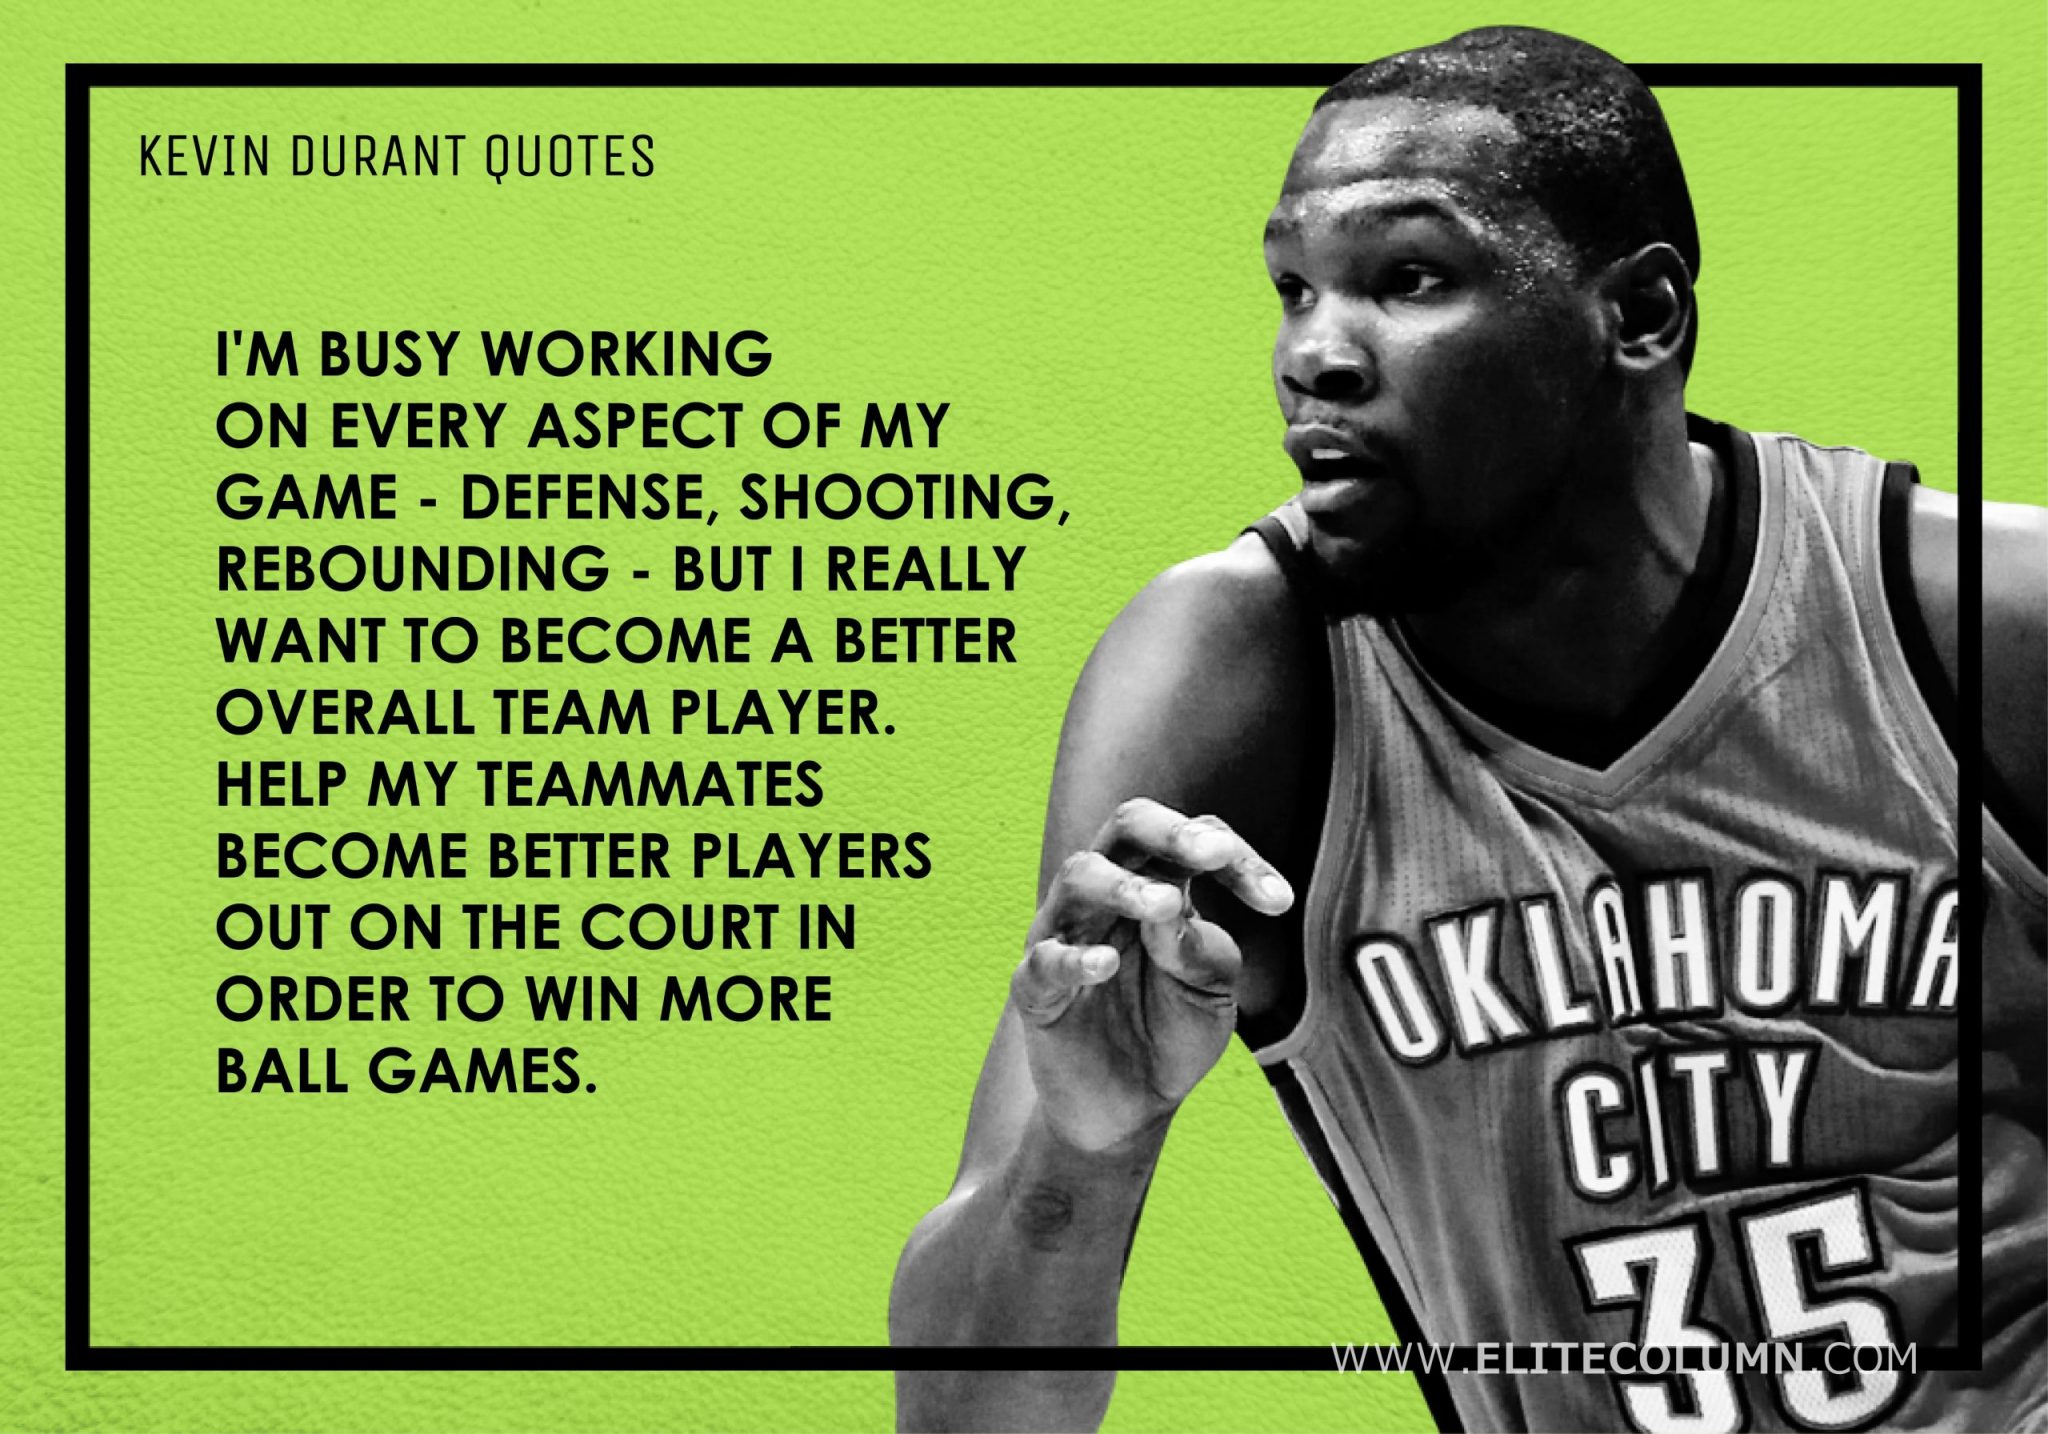 Kevin Durant Quotes (6)